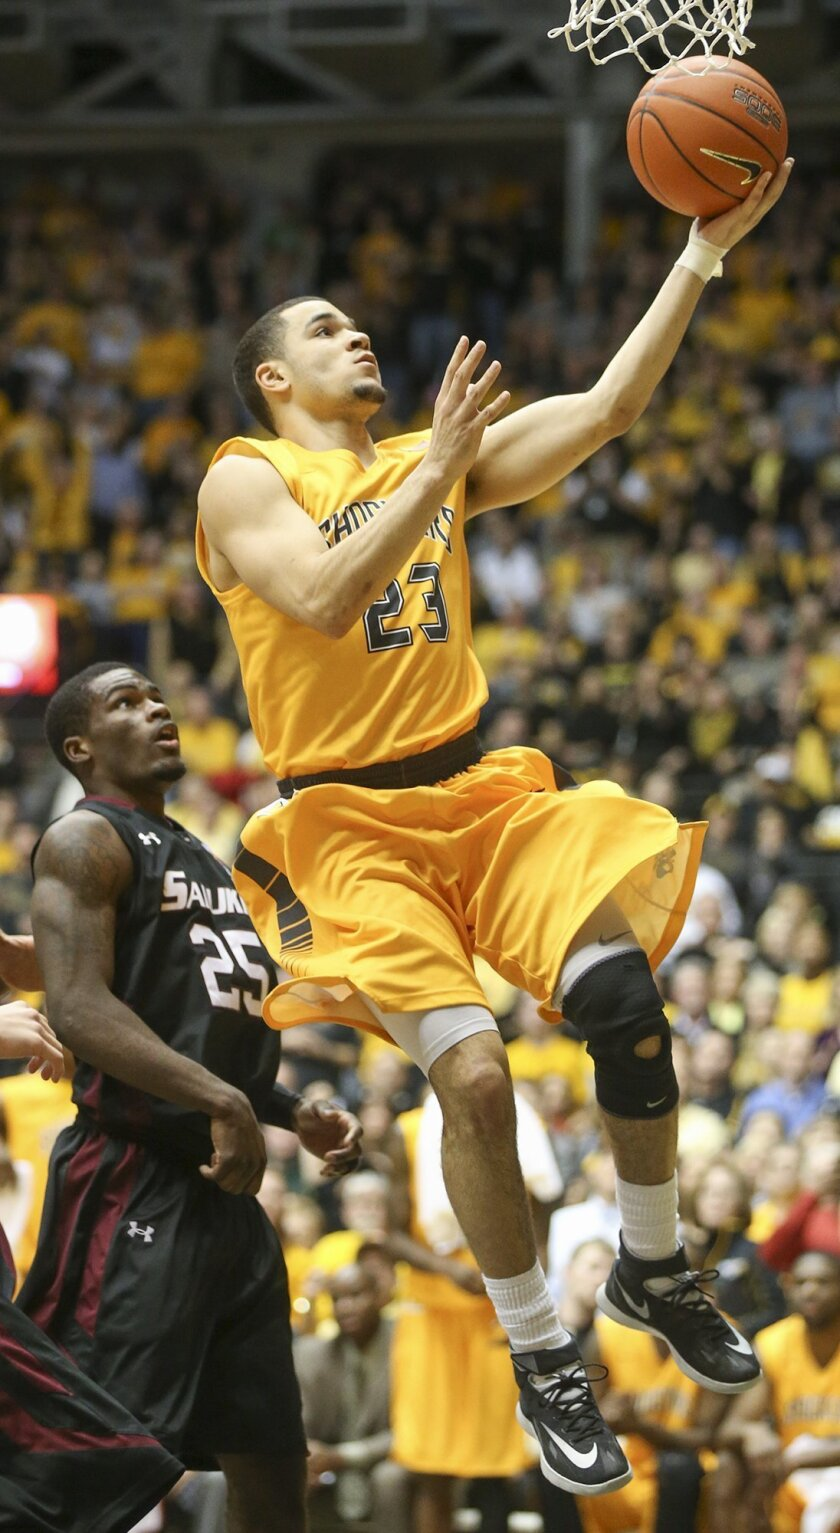 Wichita State's Fred VanVleet (23) goes to the basket against Southern Illinois' Anthony Beane during the second half of an NCAA college basketball game Tuesday, Feb. 11, 2014, in Wichita, Kan. Wichita State won 78-67. (AP Photo/The Wichita Eagle, Fernando Salazar) LOCAL TV OUT; MAGS OUT; LOCAL RADIO OUT; LOCAL INTERNET OUT